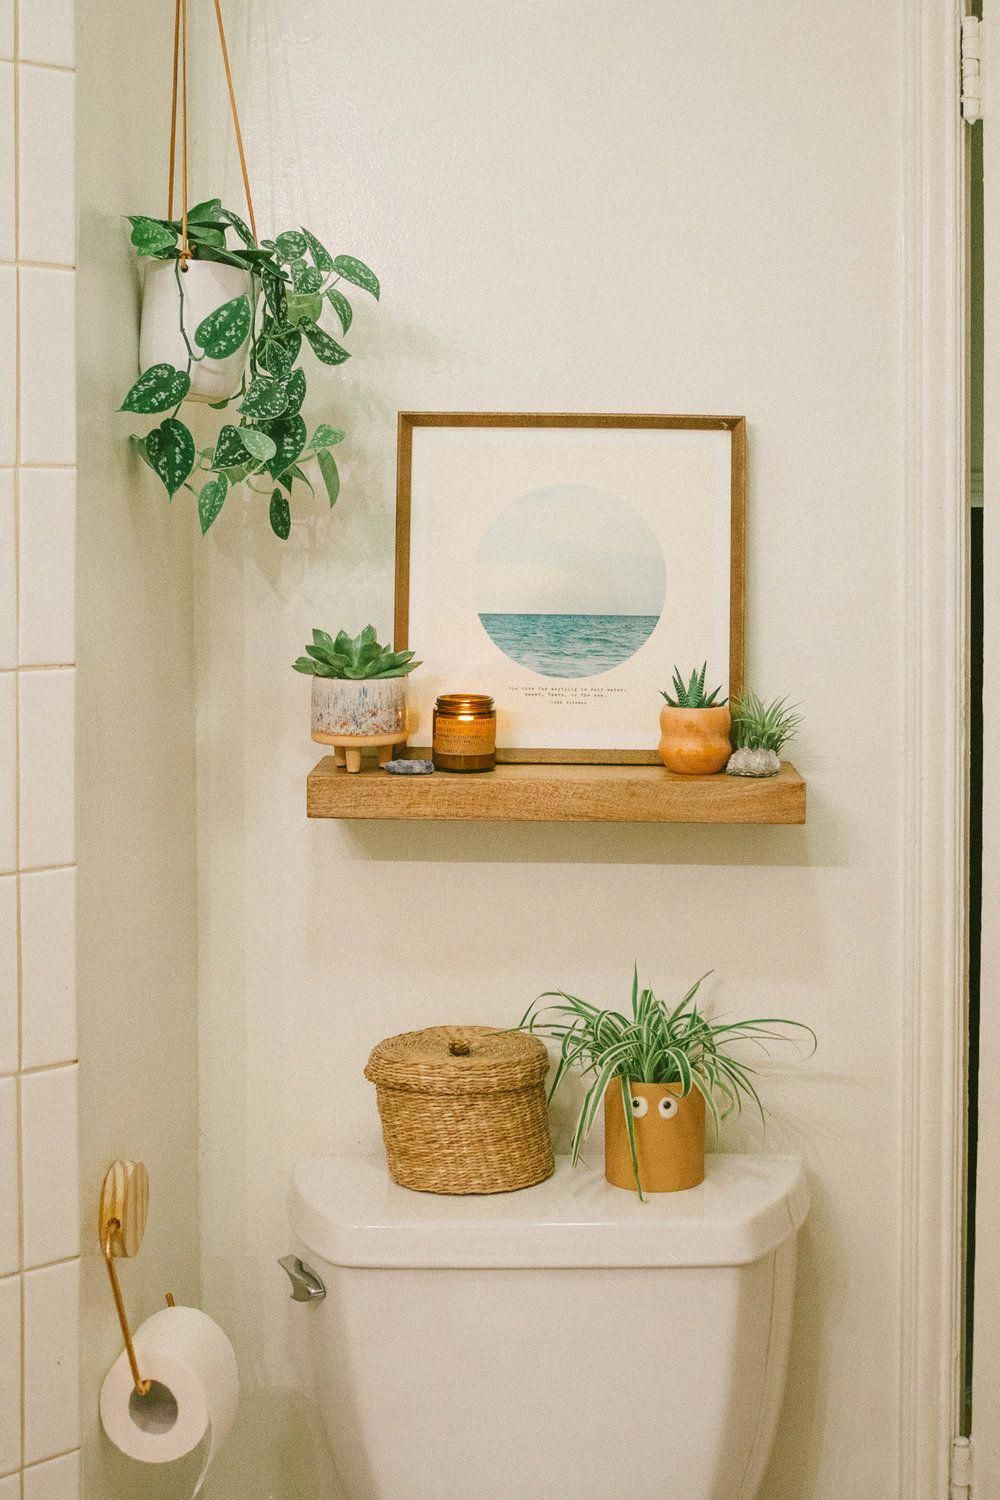 Orange Bathroom Accessories  Small Bathroom Wall Decor Ideas